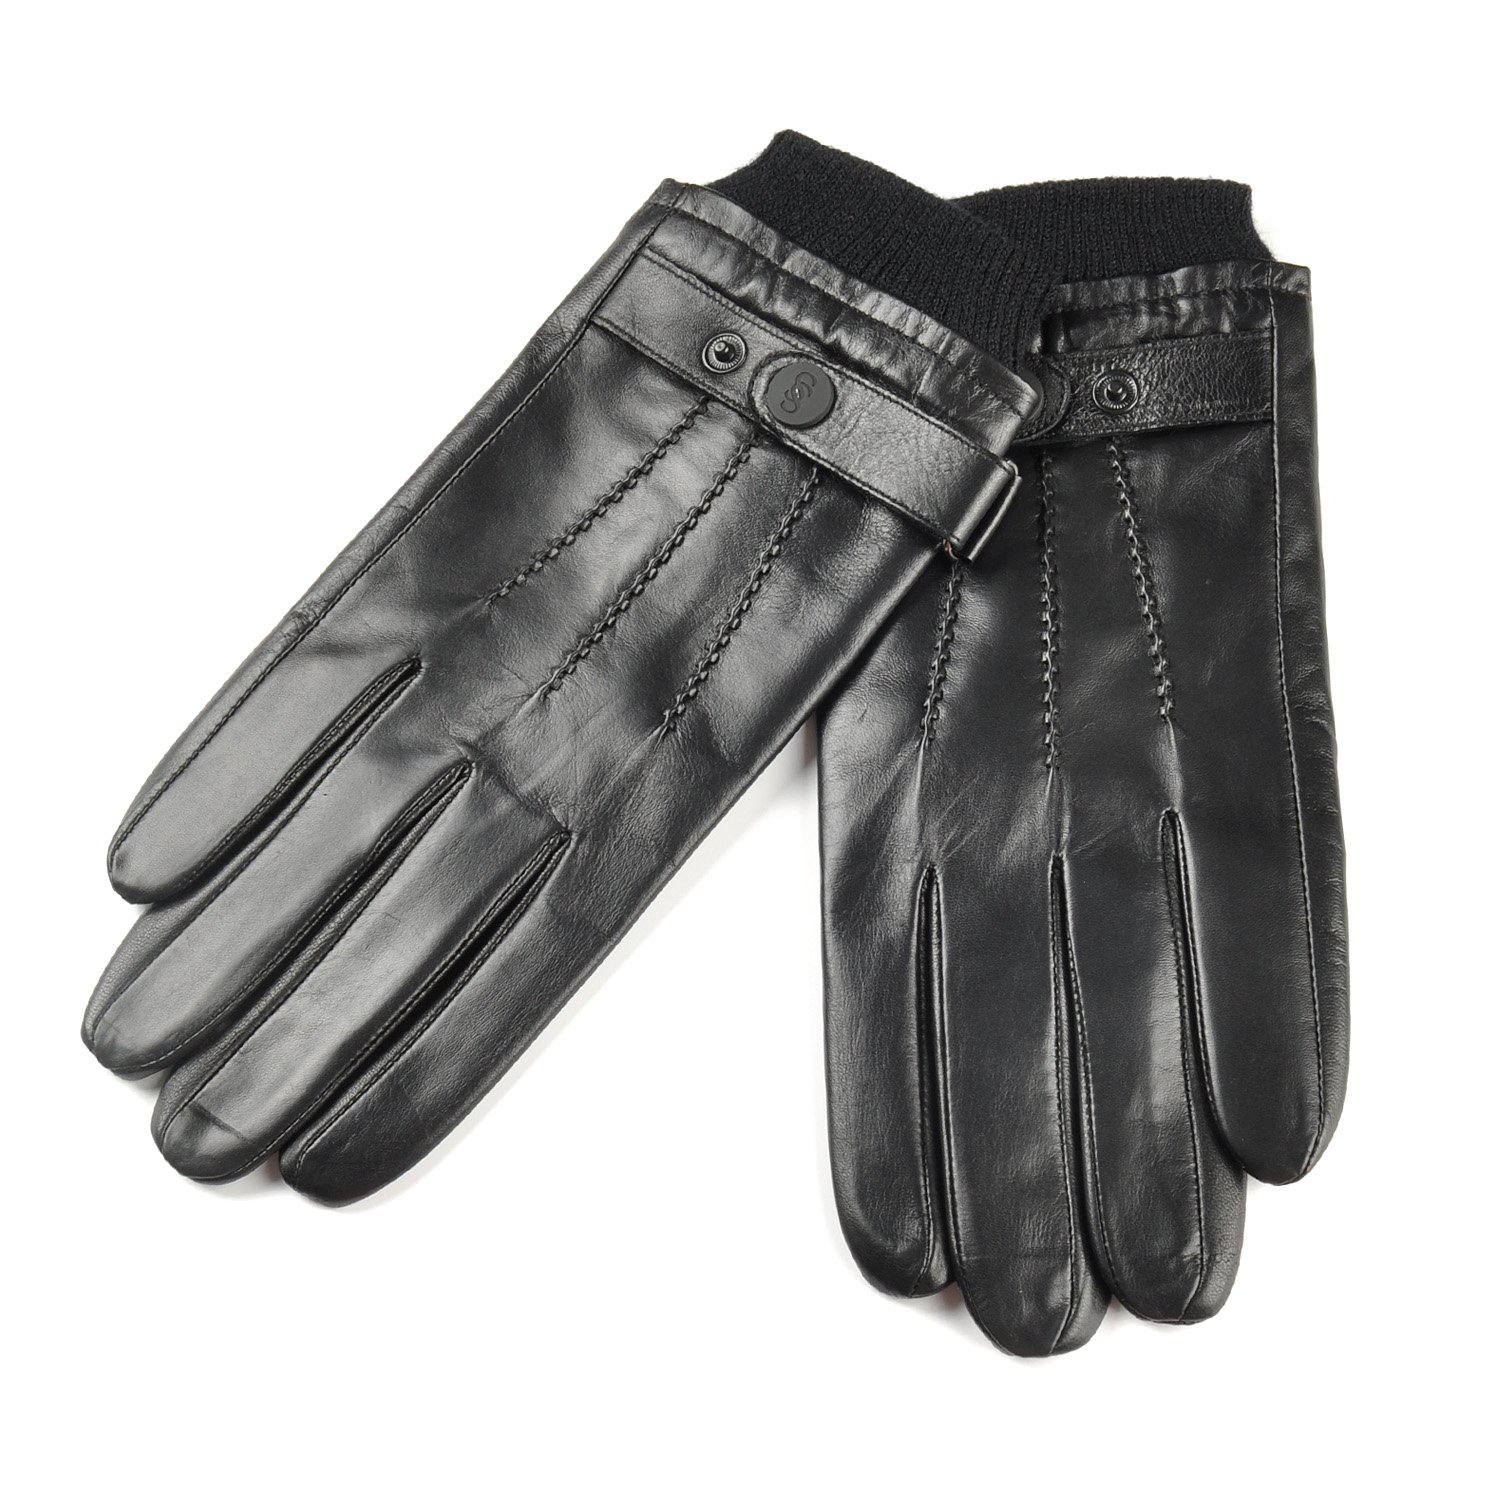 SIEFERSN Classic Style Rib Cuff Men's Lambskin Full Touchscreen Gloves Cold Weather Leather Gloves 1164225016 (Medium 8.5'', Black (Full Touchscreen/Soft flannel Lining))